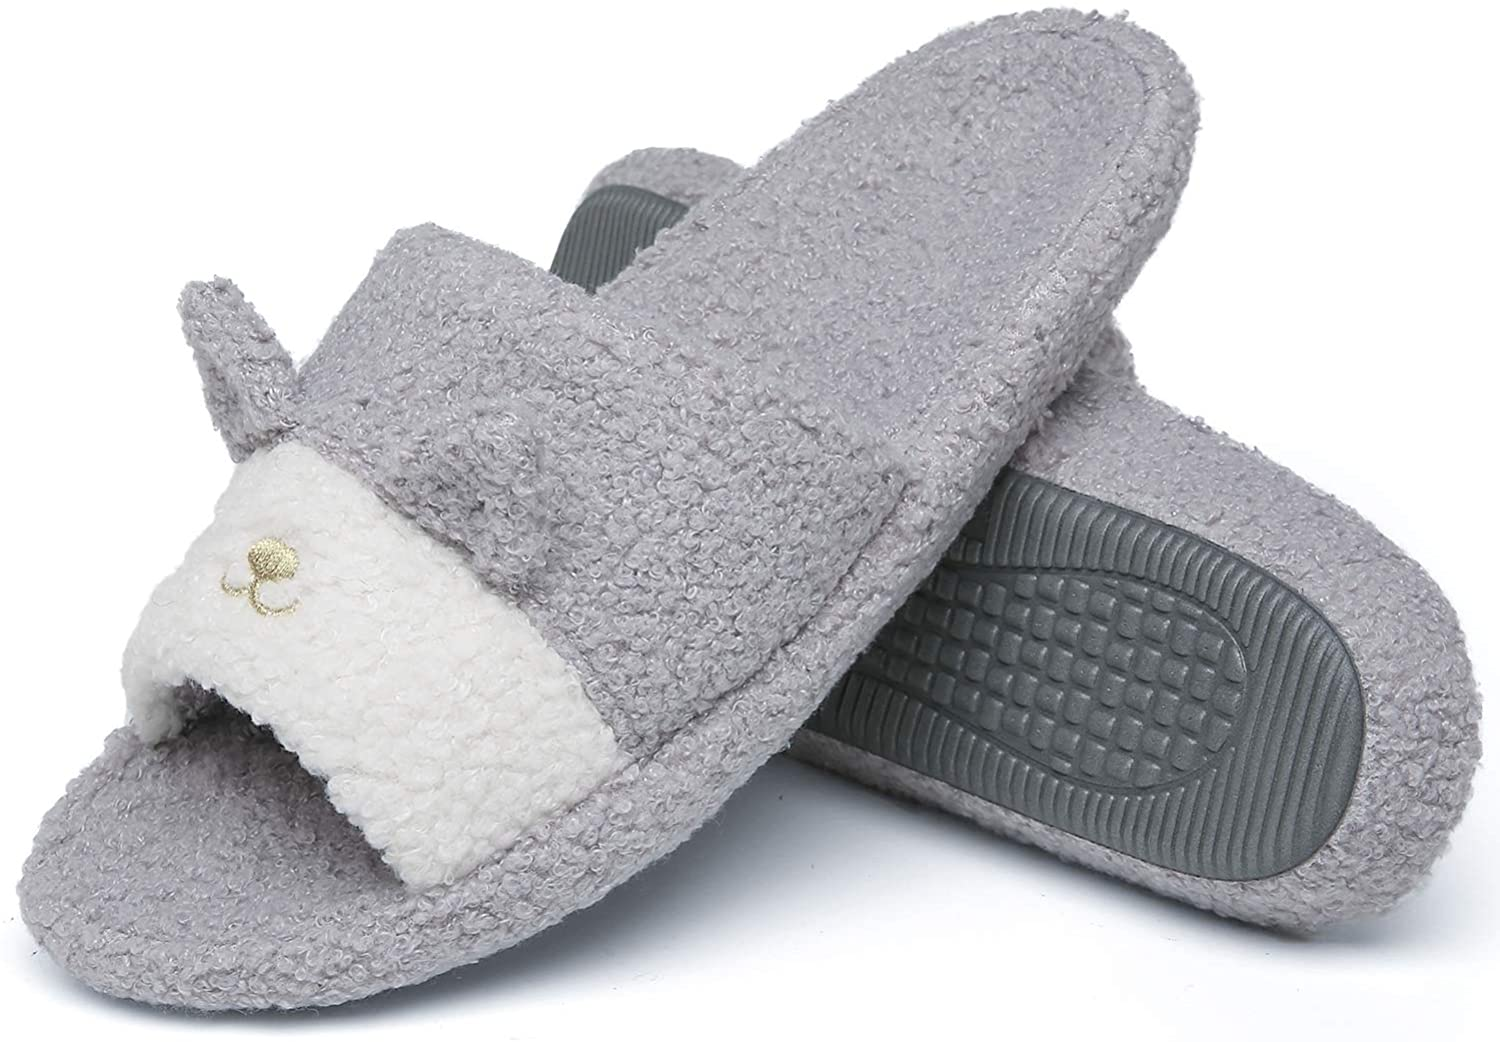 ChayChax Womens Fuzzy Open Toe House Slippers Memory Foam Slip On Soft Plush Slides Cute Indoor/Outdoor Slipper with Comfort Heel Cup